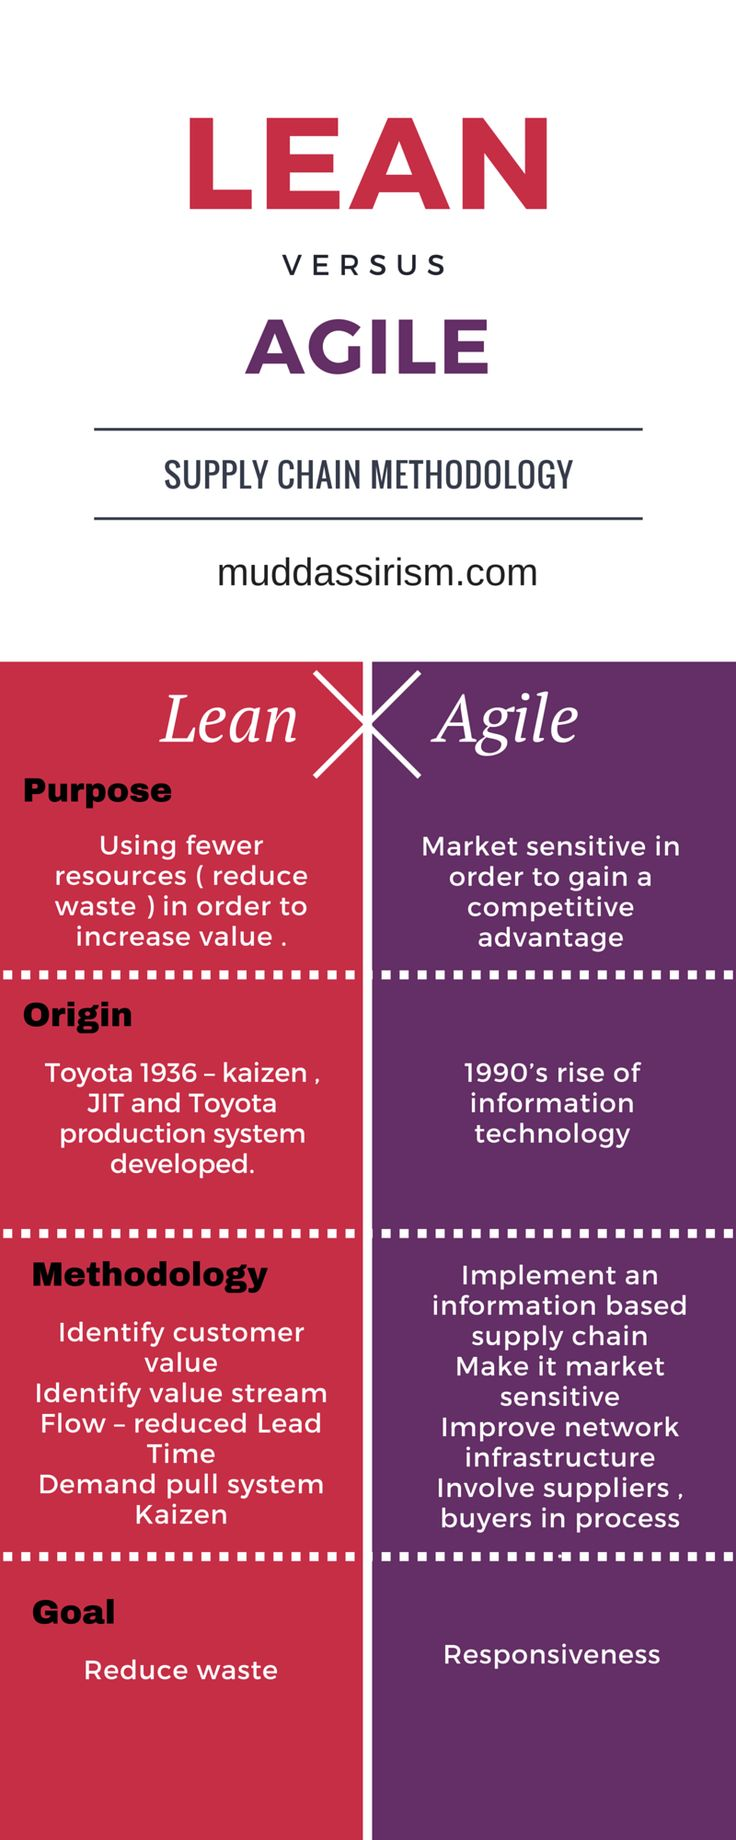 lean and agile supply chain A lean supply chain is cost-conscious and efficient, but it won't be able to respond to new demands quickly on the other hand, an agile supply chain is highly adaptable, but it can become hard to control and predict.